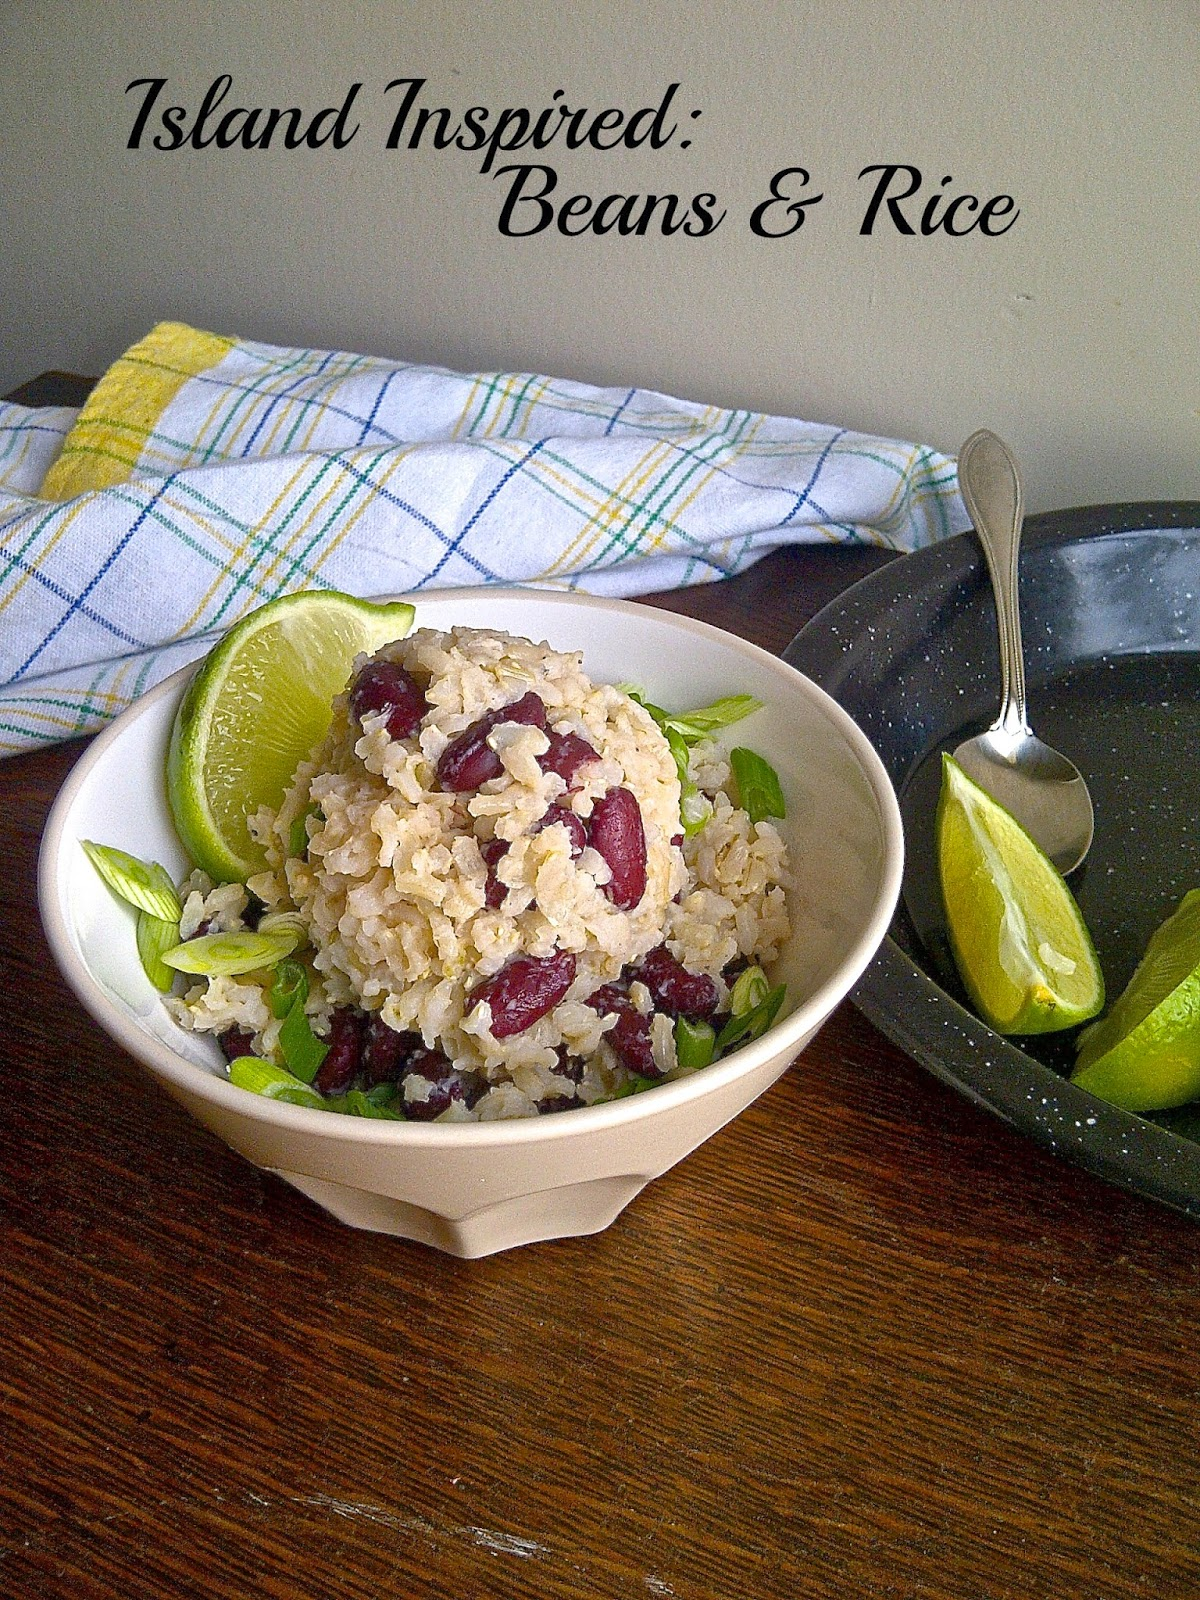 Island Inspired:  Beans & Rice